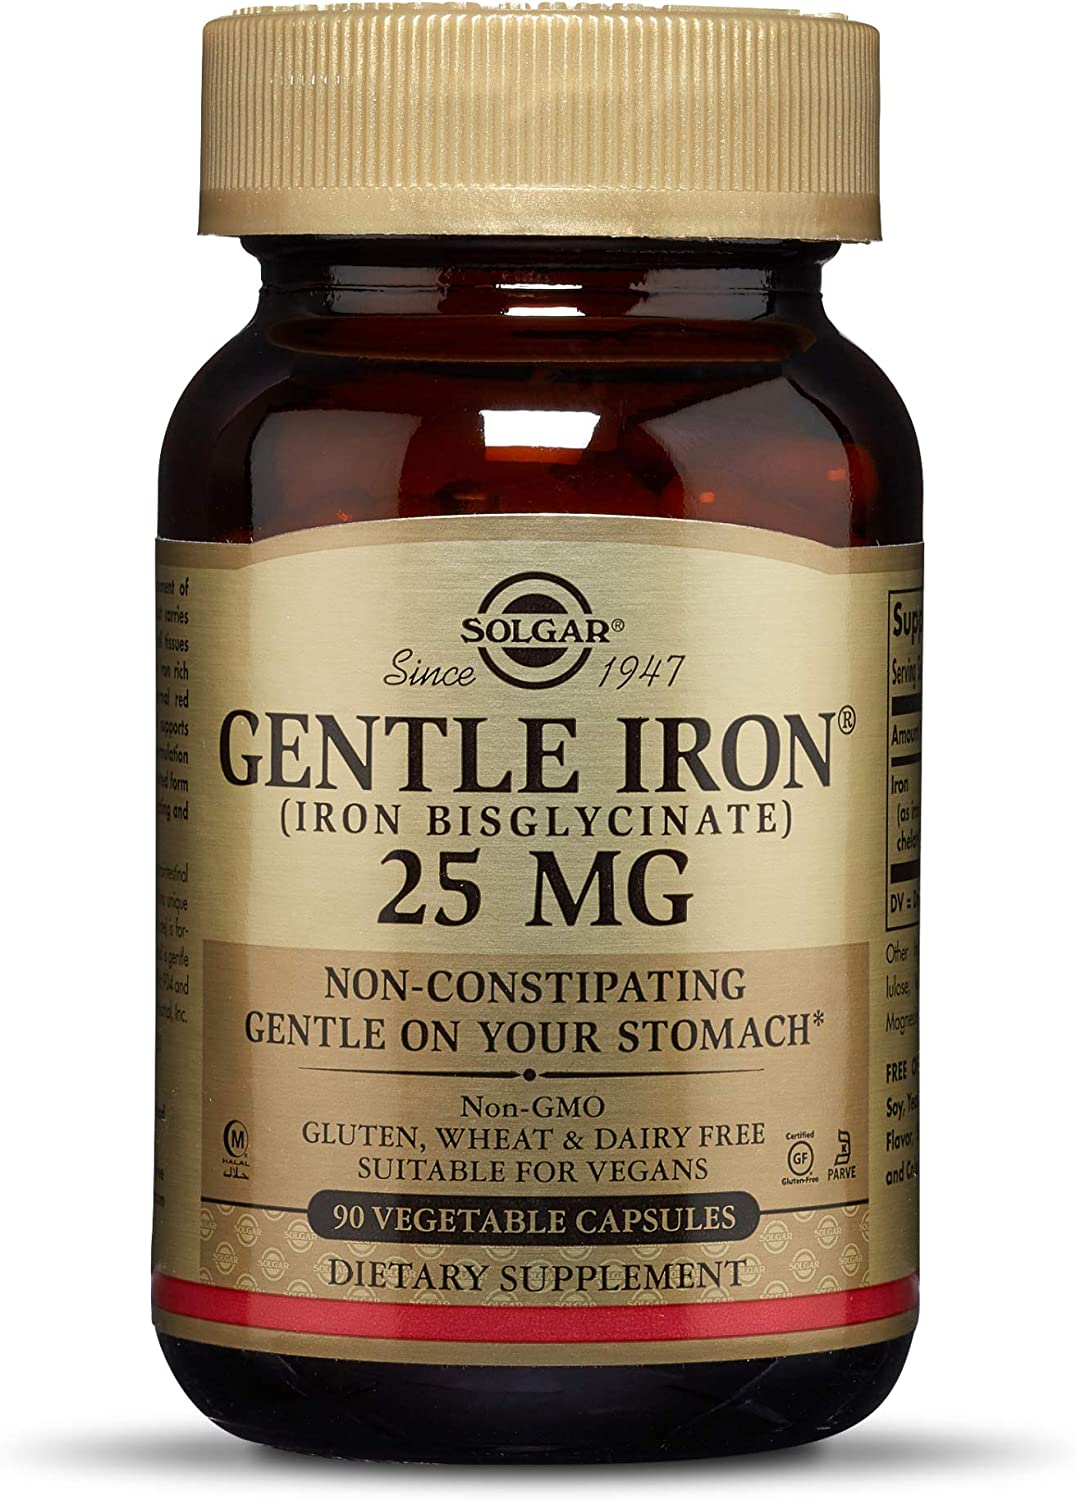 SOLGAR Gentle Iron Vegetable Capsules Bonus, 90 CT